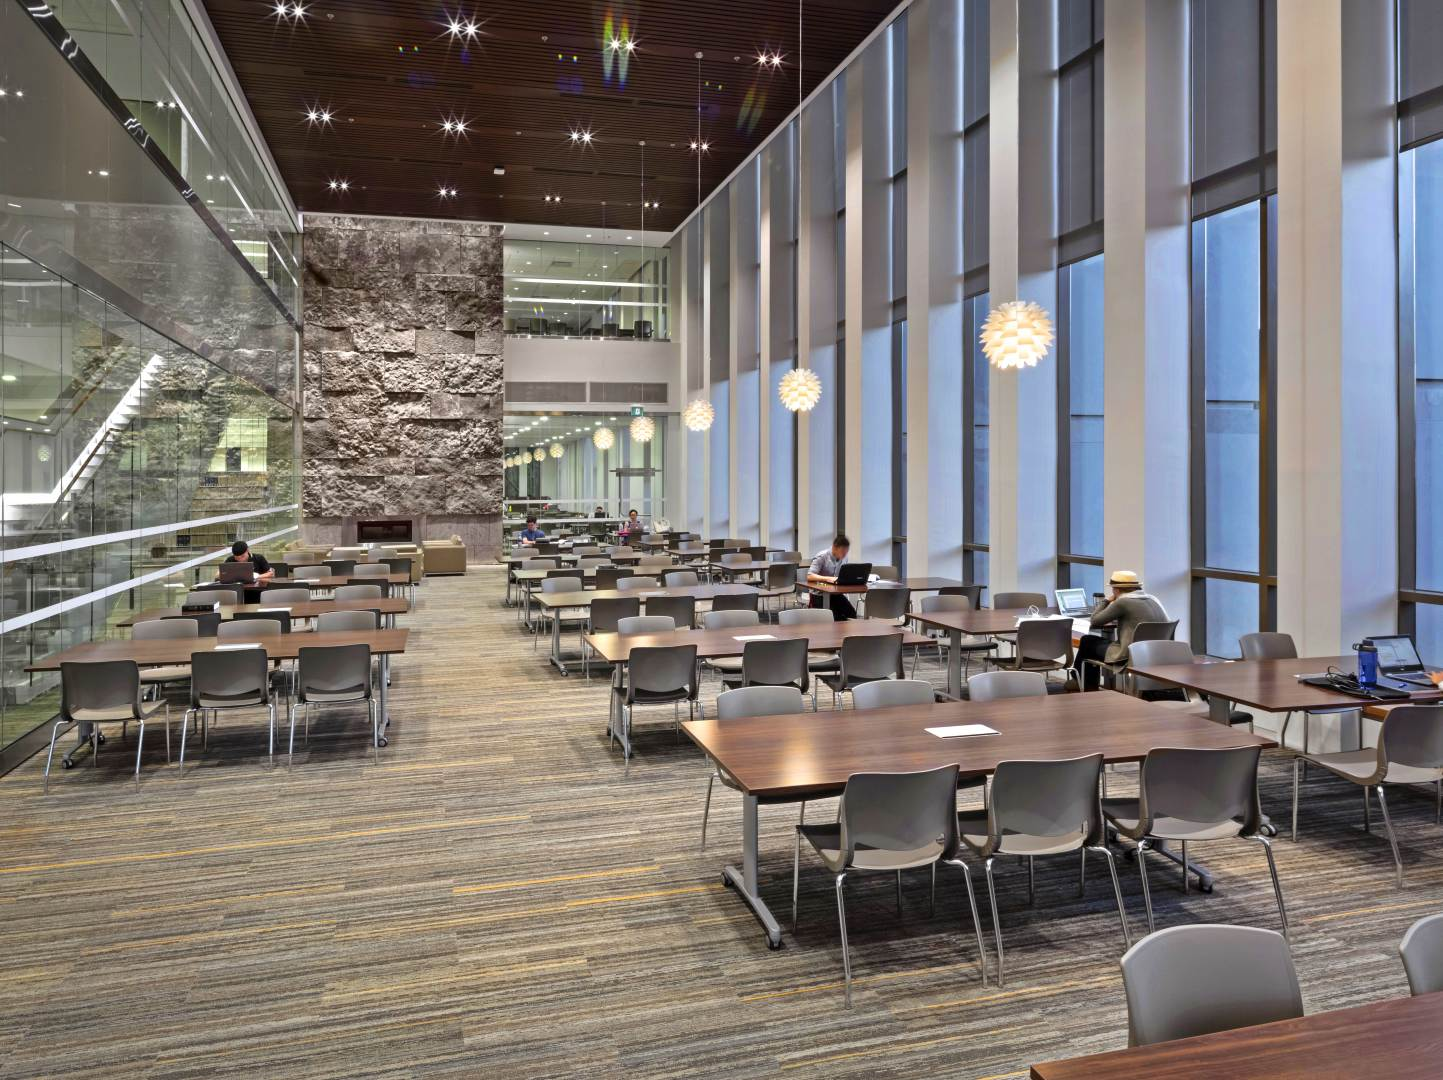 University of Toronto Jackman Law Renovation and Expansion